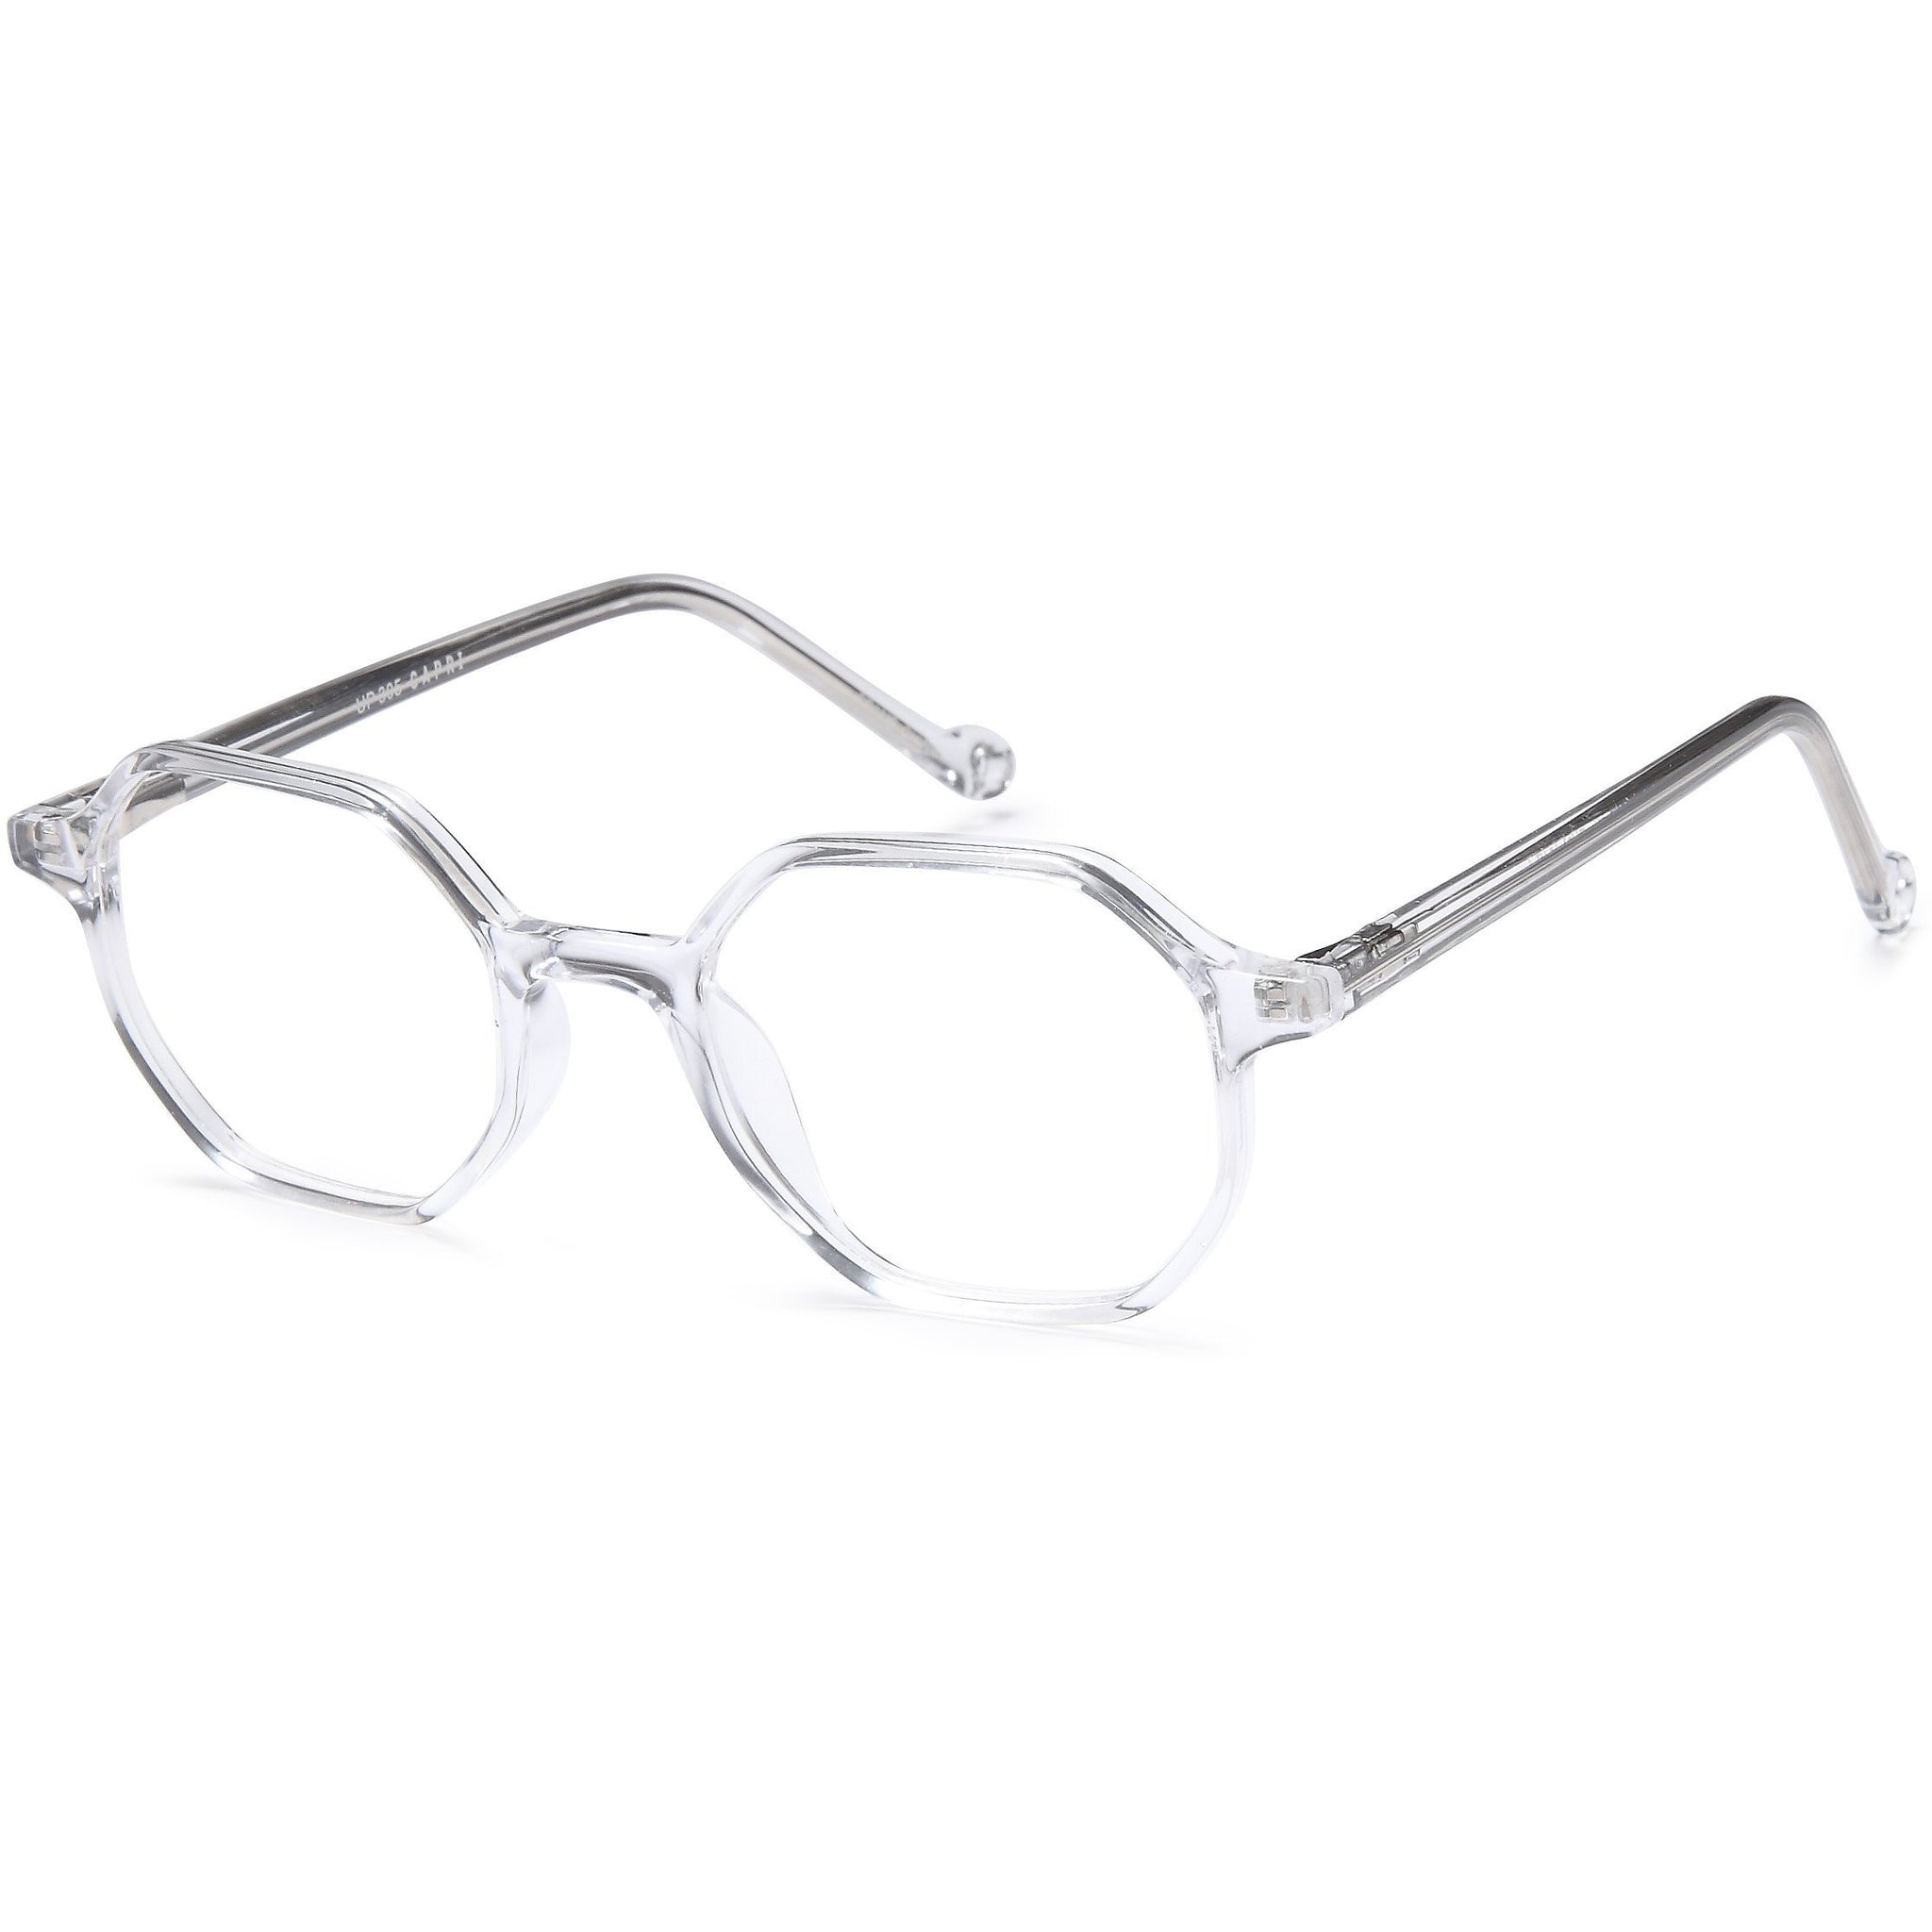 2U Prescription Glasses UP 305 Optical Eyeglasses Frame